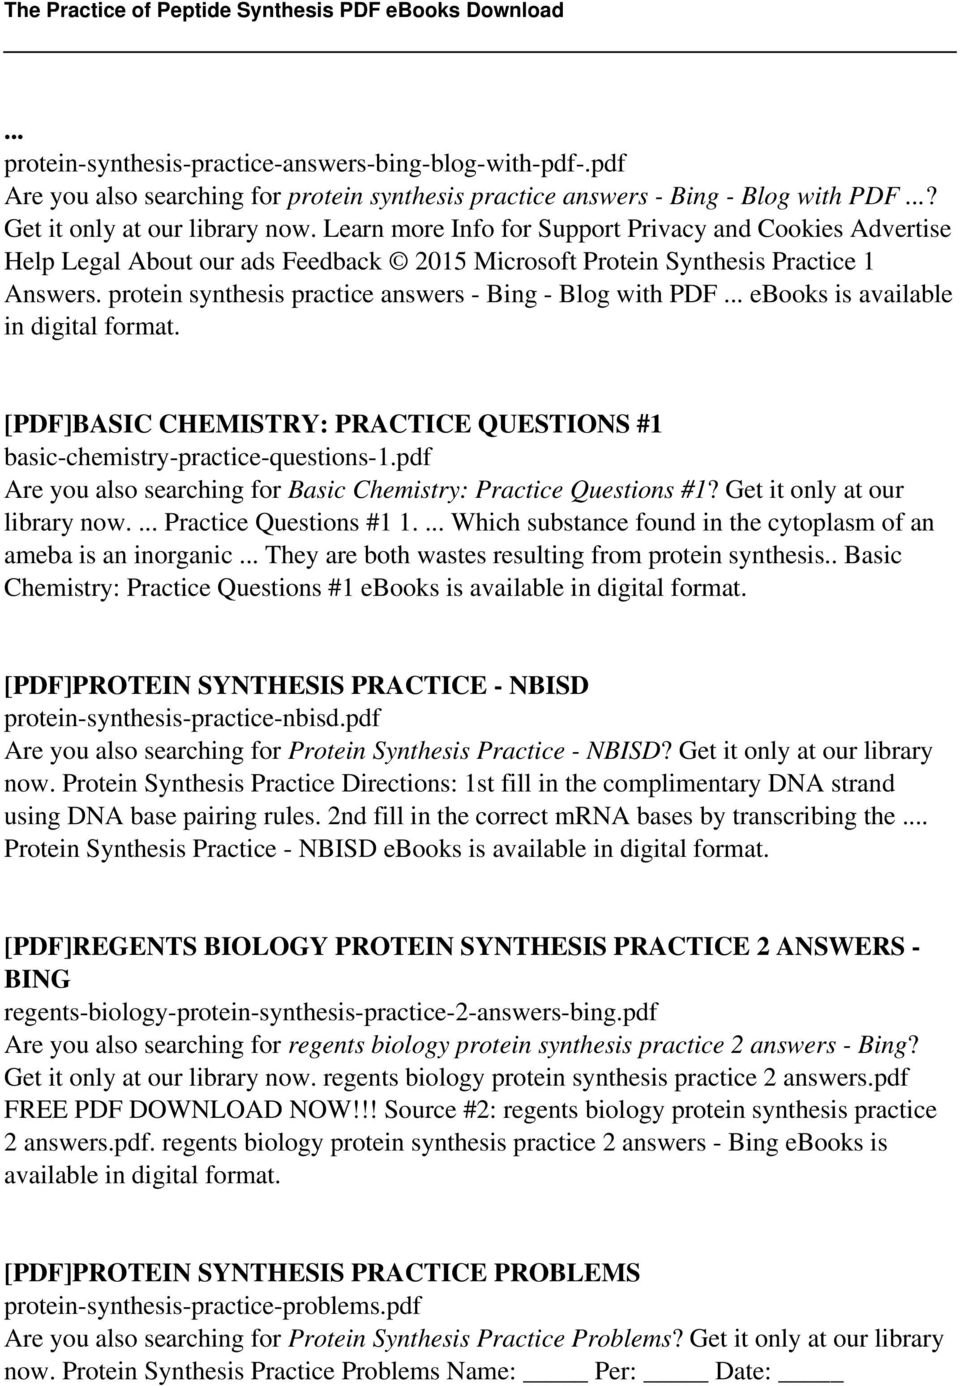 worksheet Protein Synthesis Worksheet Lesson Plans Inc 2007 the practice of peptide synthesis pdf protein answers bing blog with ebooks is available